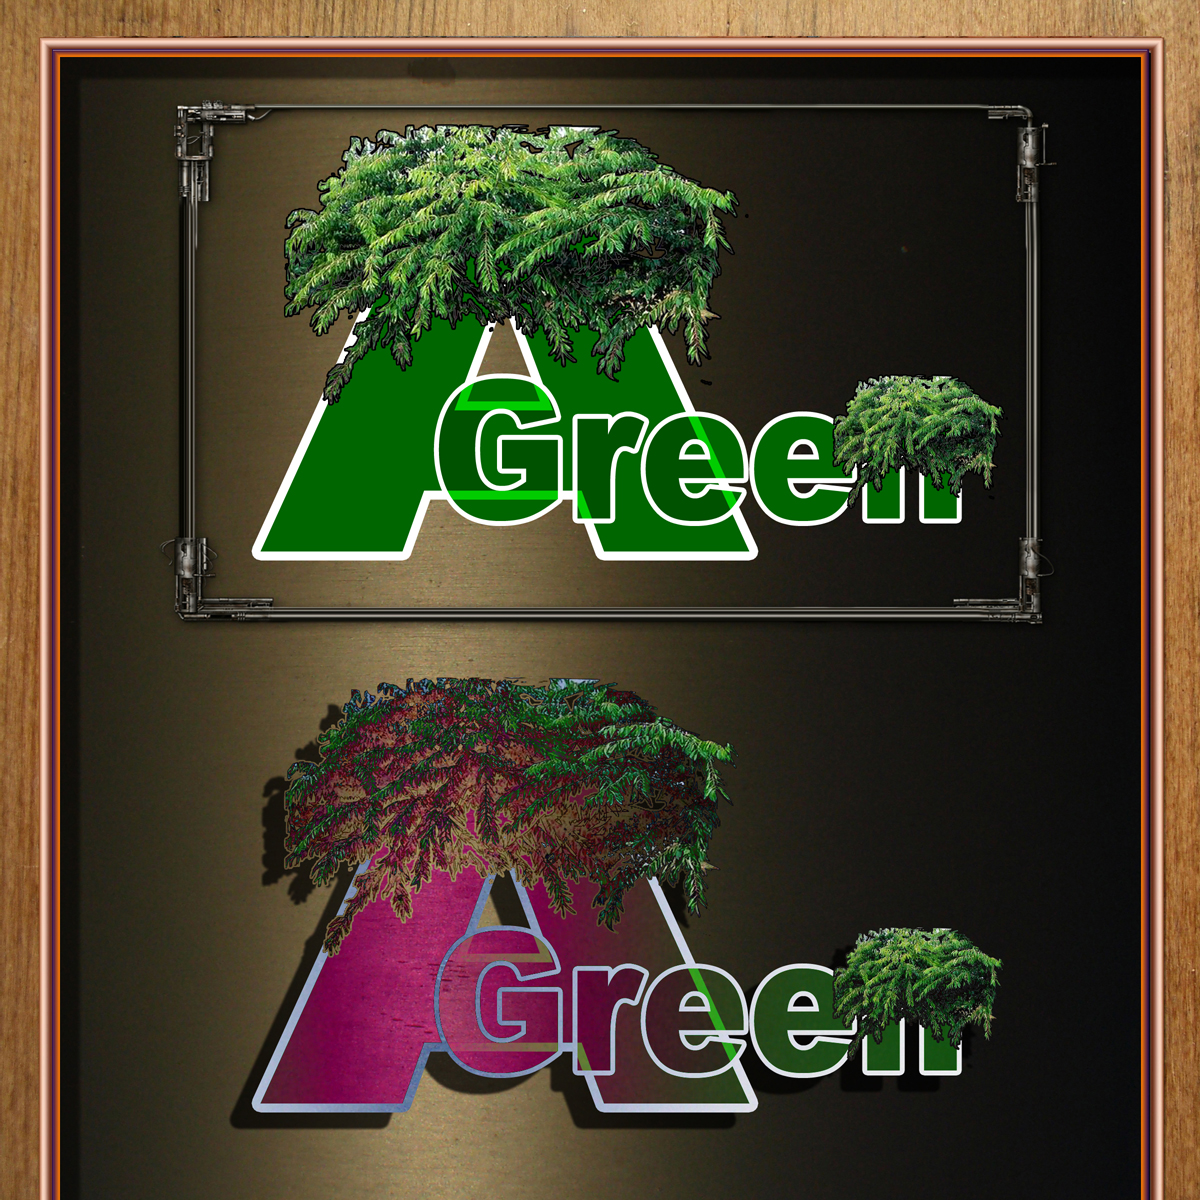 Logo Design by MITUCA ANDREI - Entry No. 8 in the Logo Design Contest Inspiring Logo Design for Agreen.